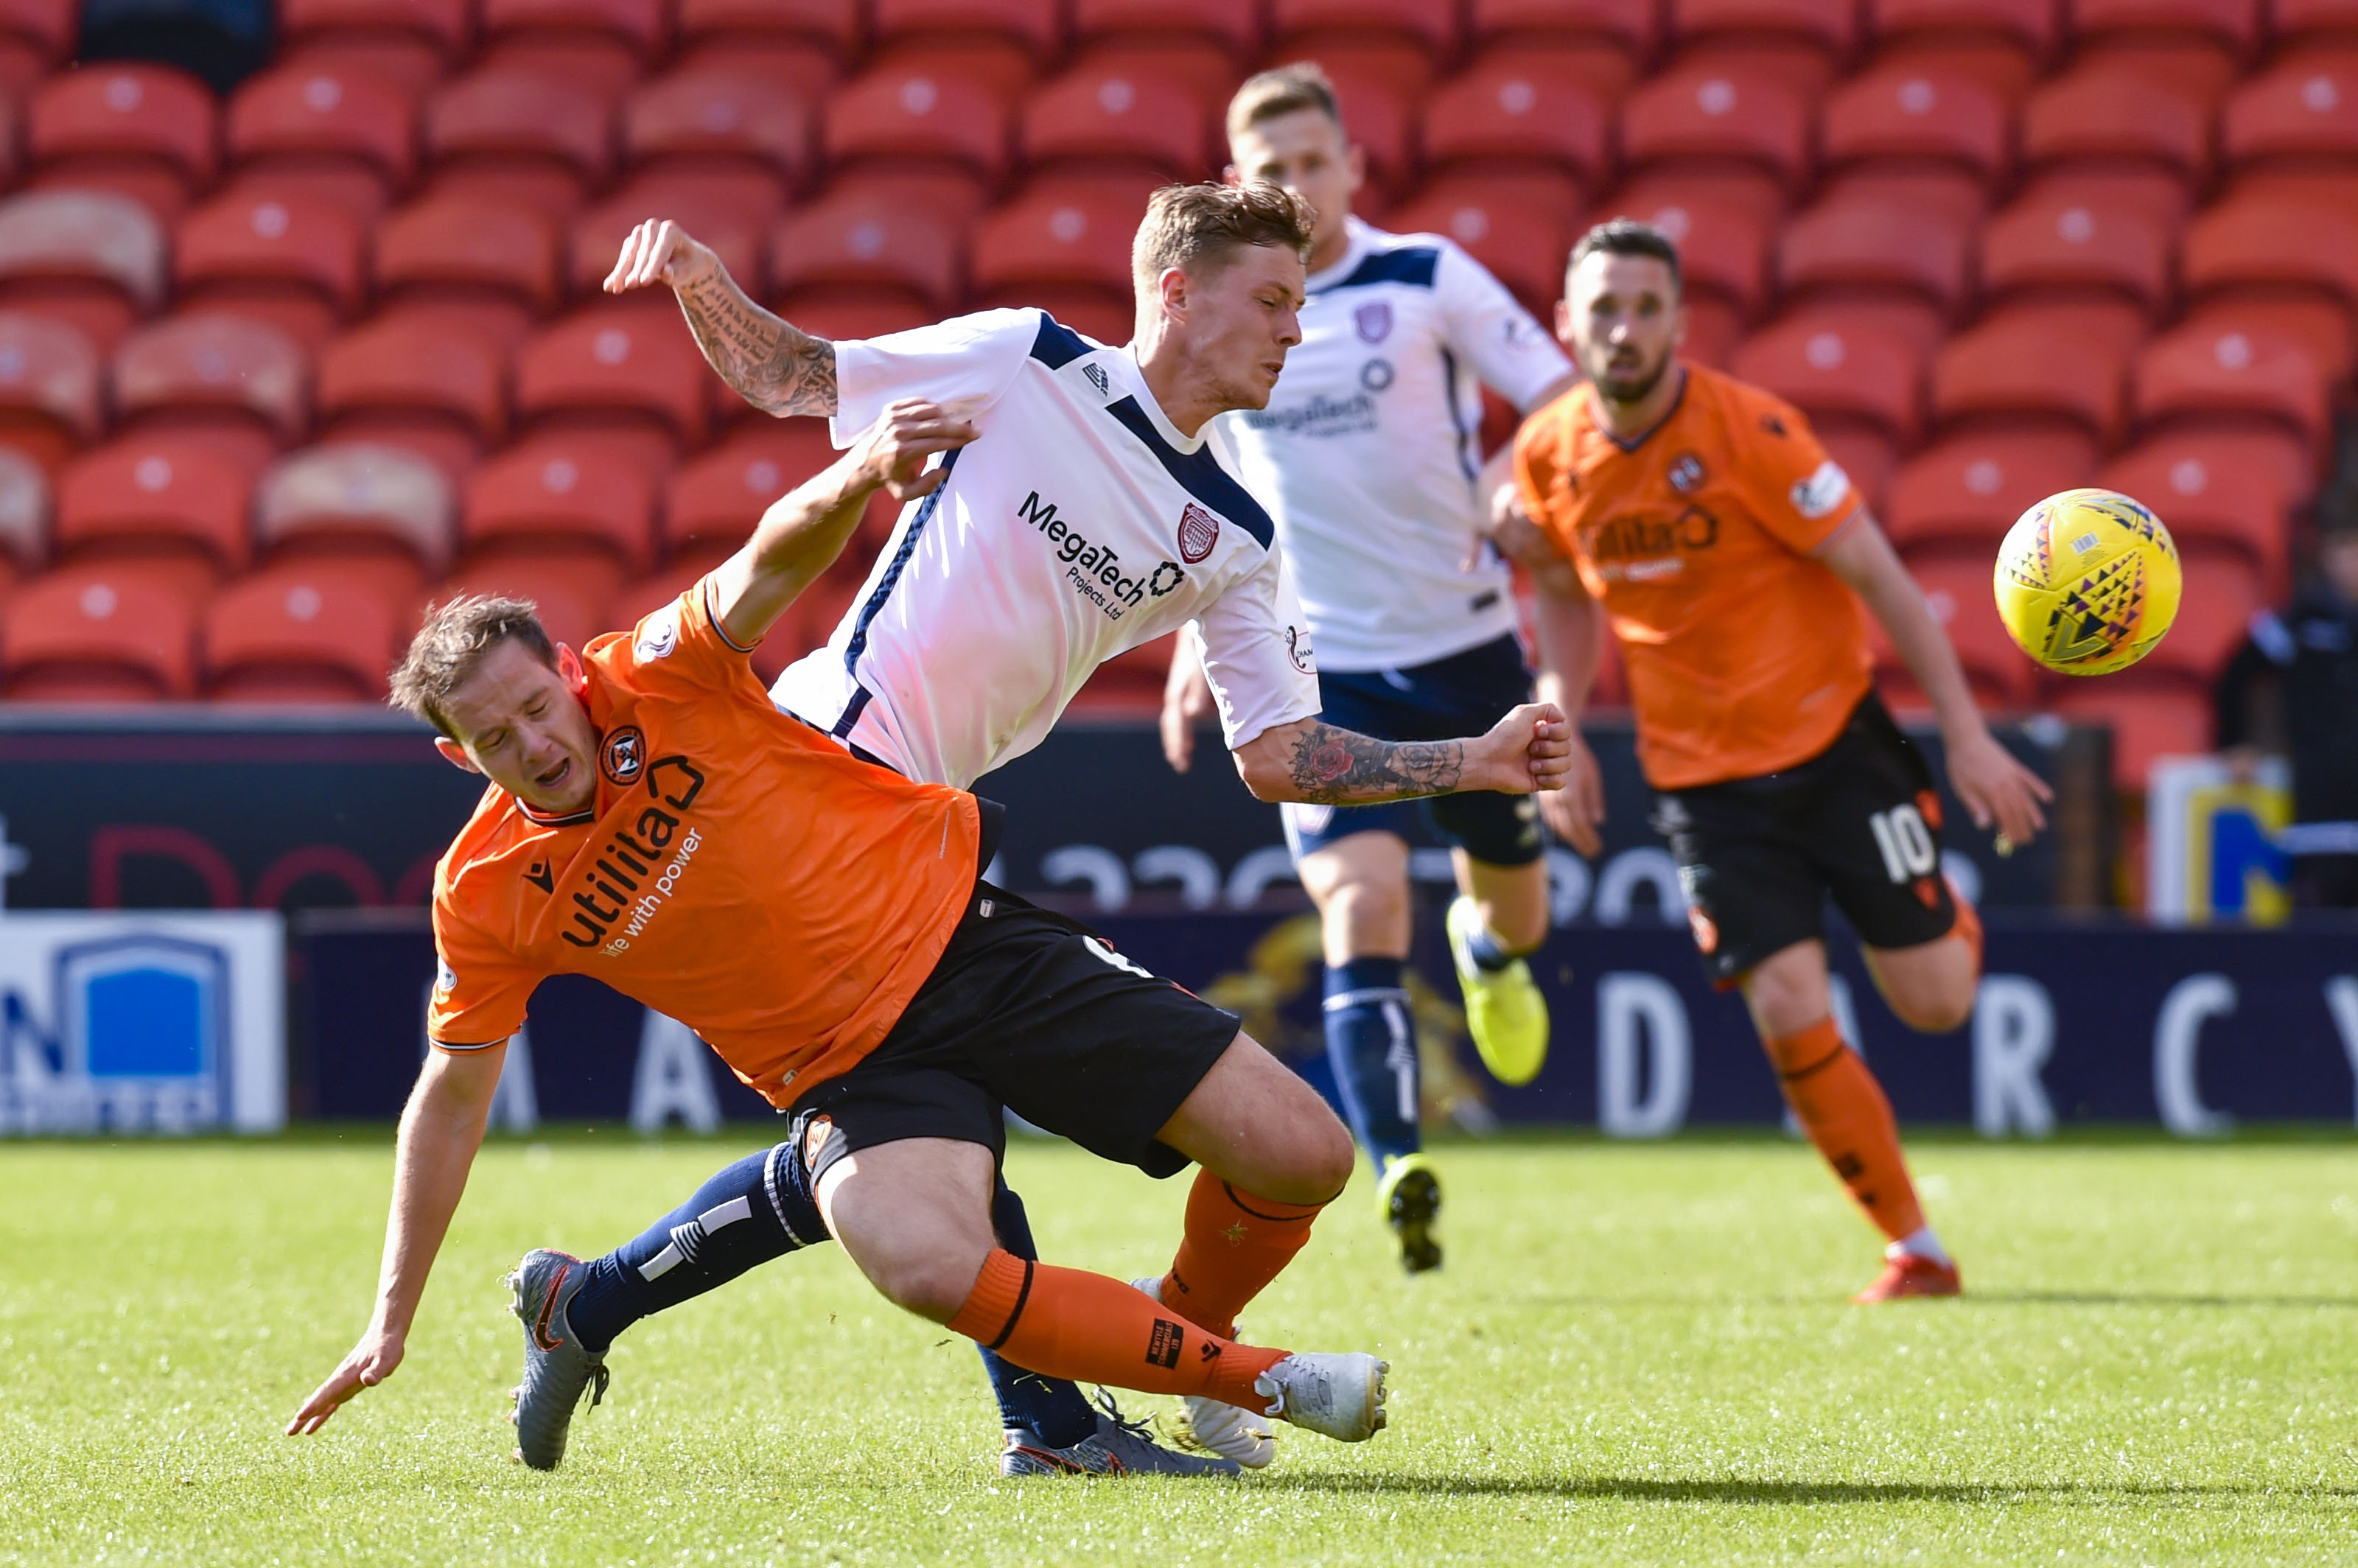 Dundee United's Peter Pawlett (L) in action with Arbroath's Thomas O'Brien during the Tunnock's Caramel Wafer Challenge Cup match between Dundee United and Arbroath on September 7.